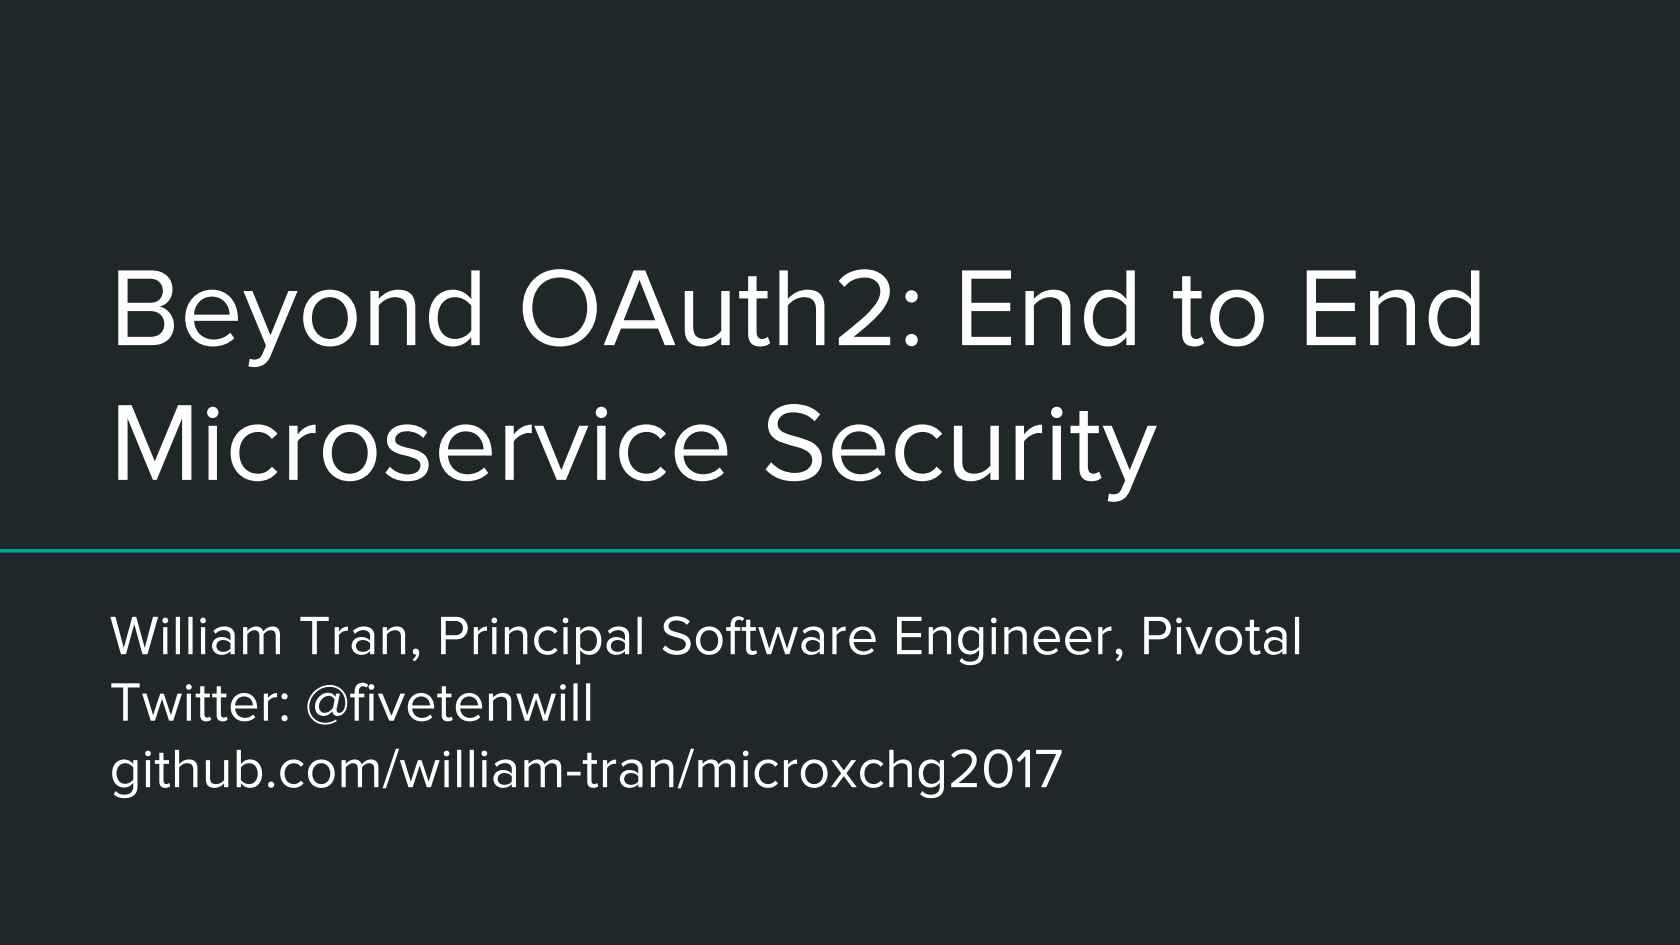 Beyond OAuth2: End to End Microservice Security